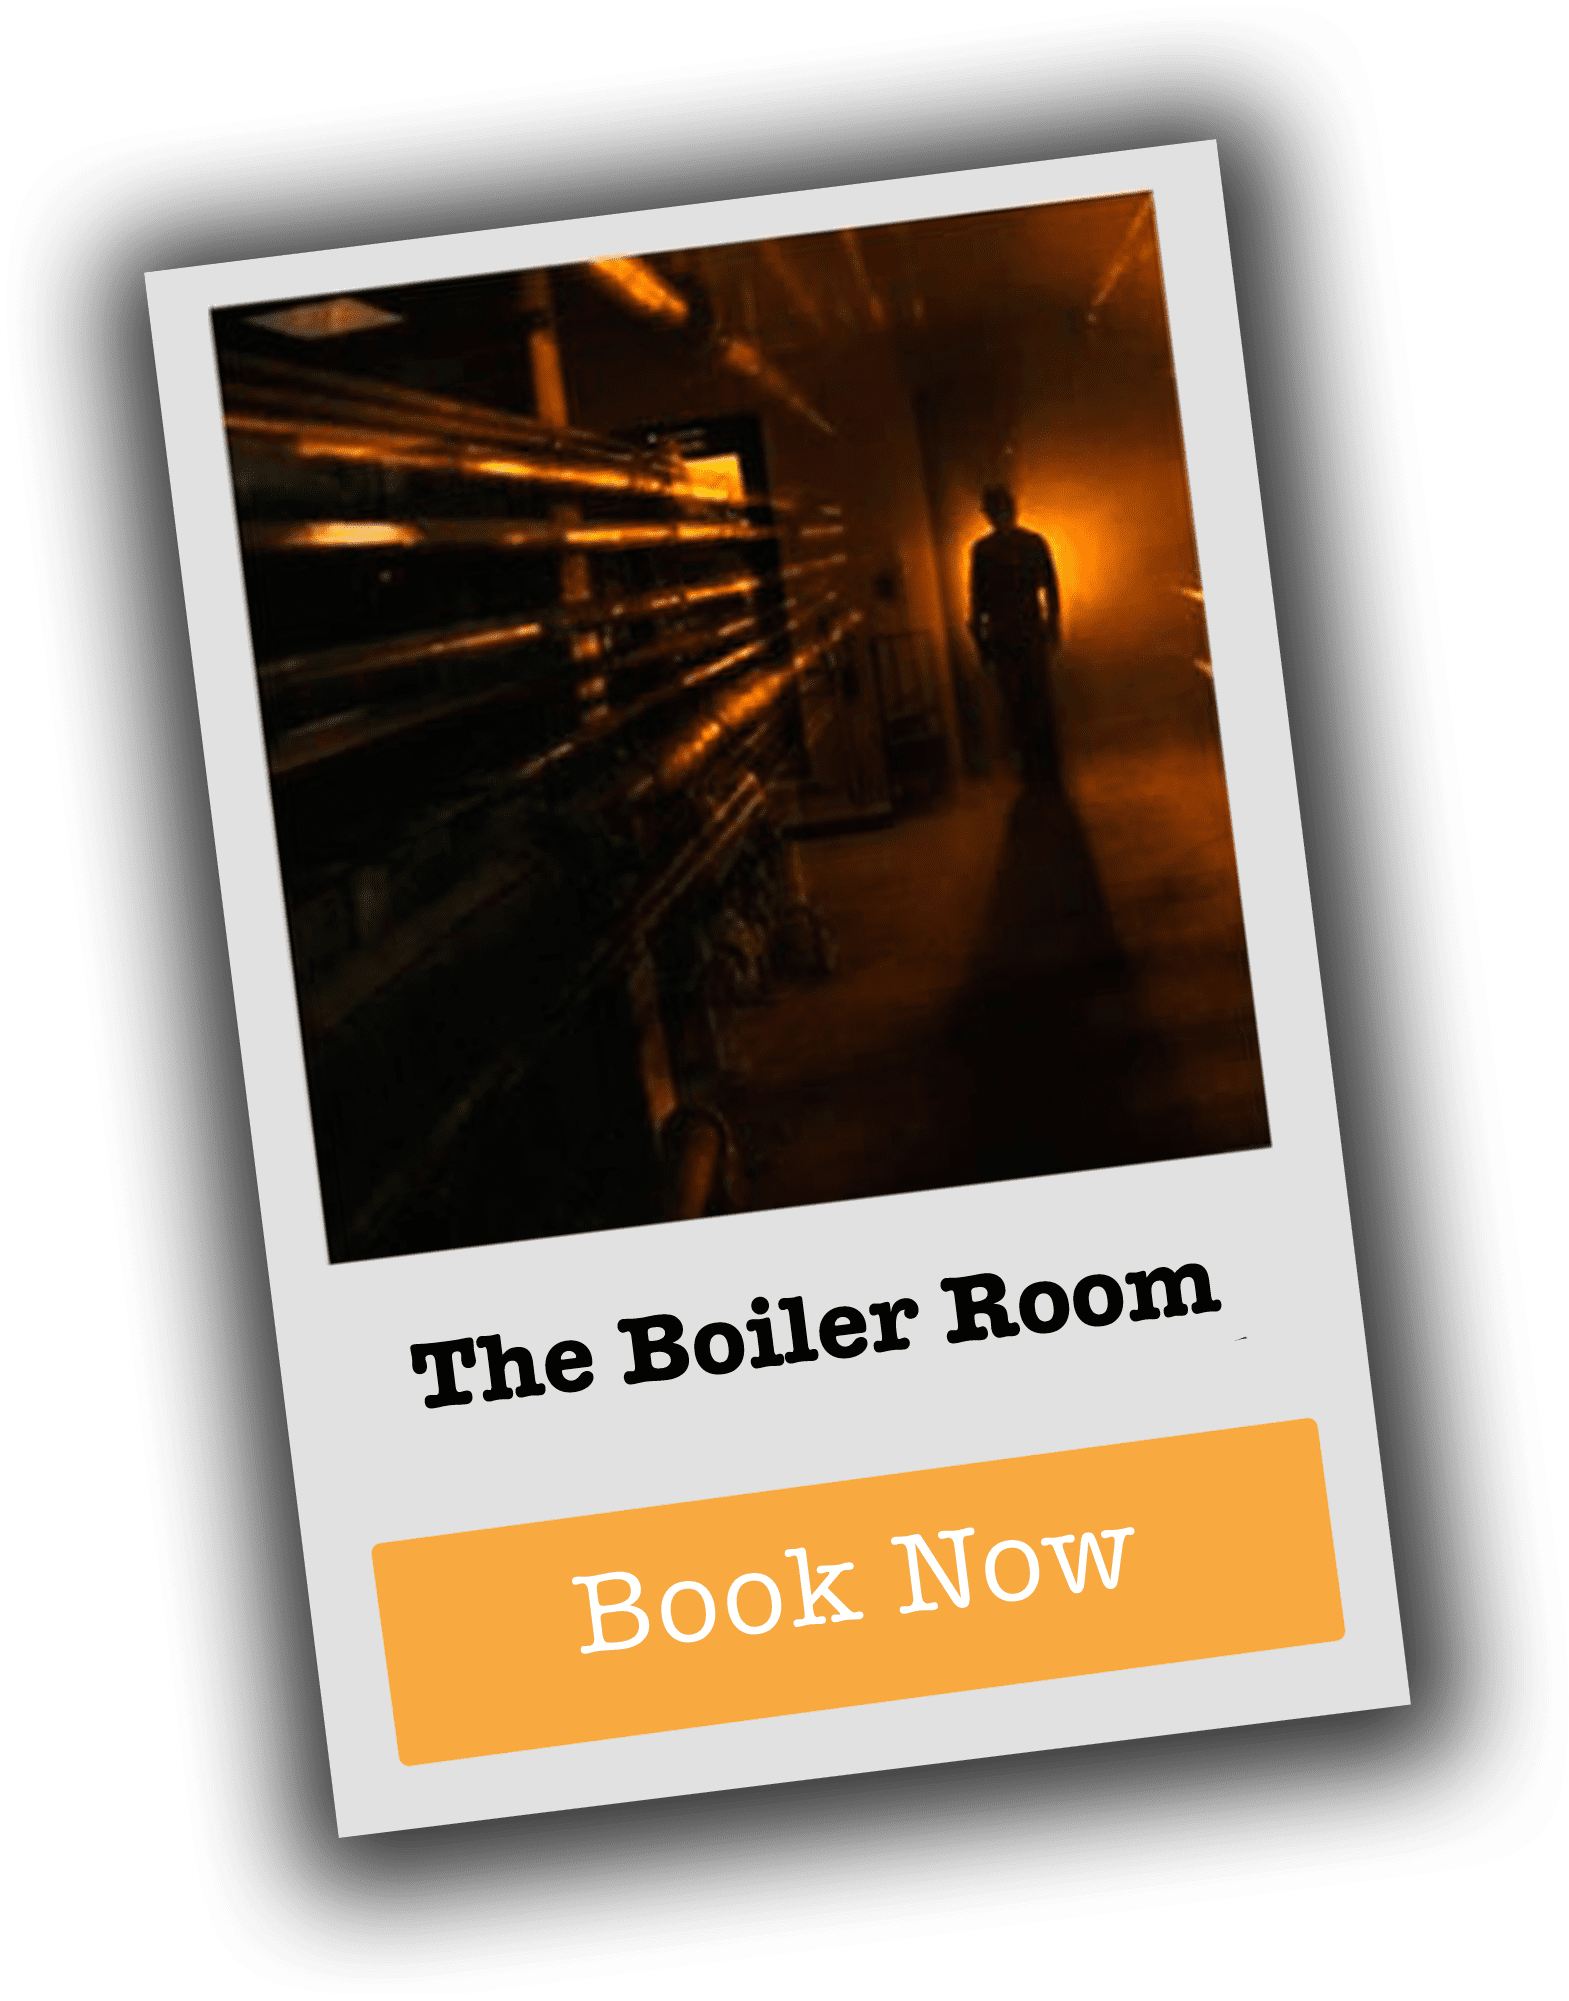 boiler room-book now